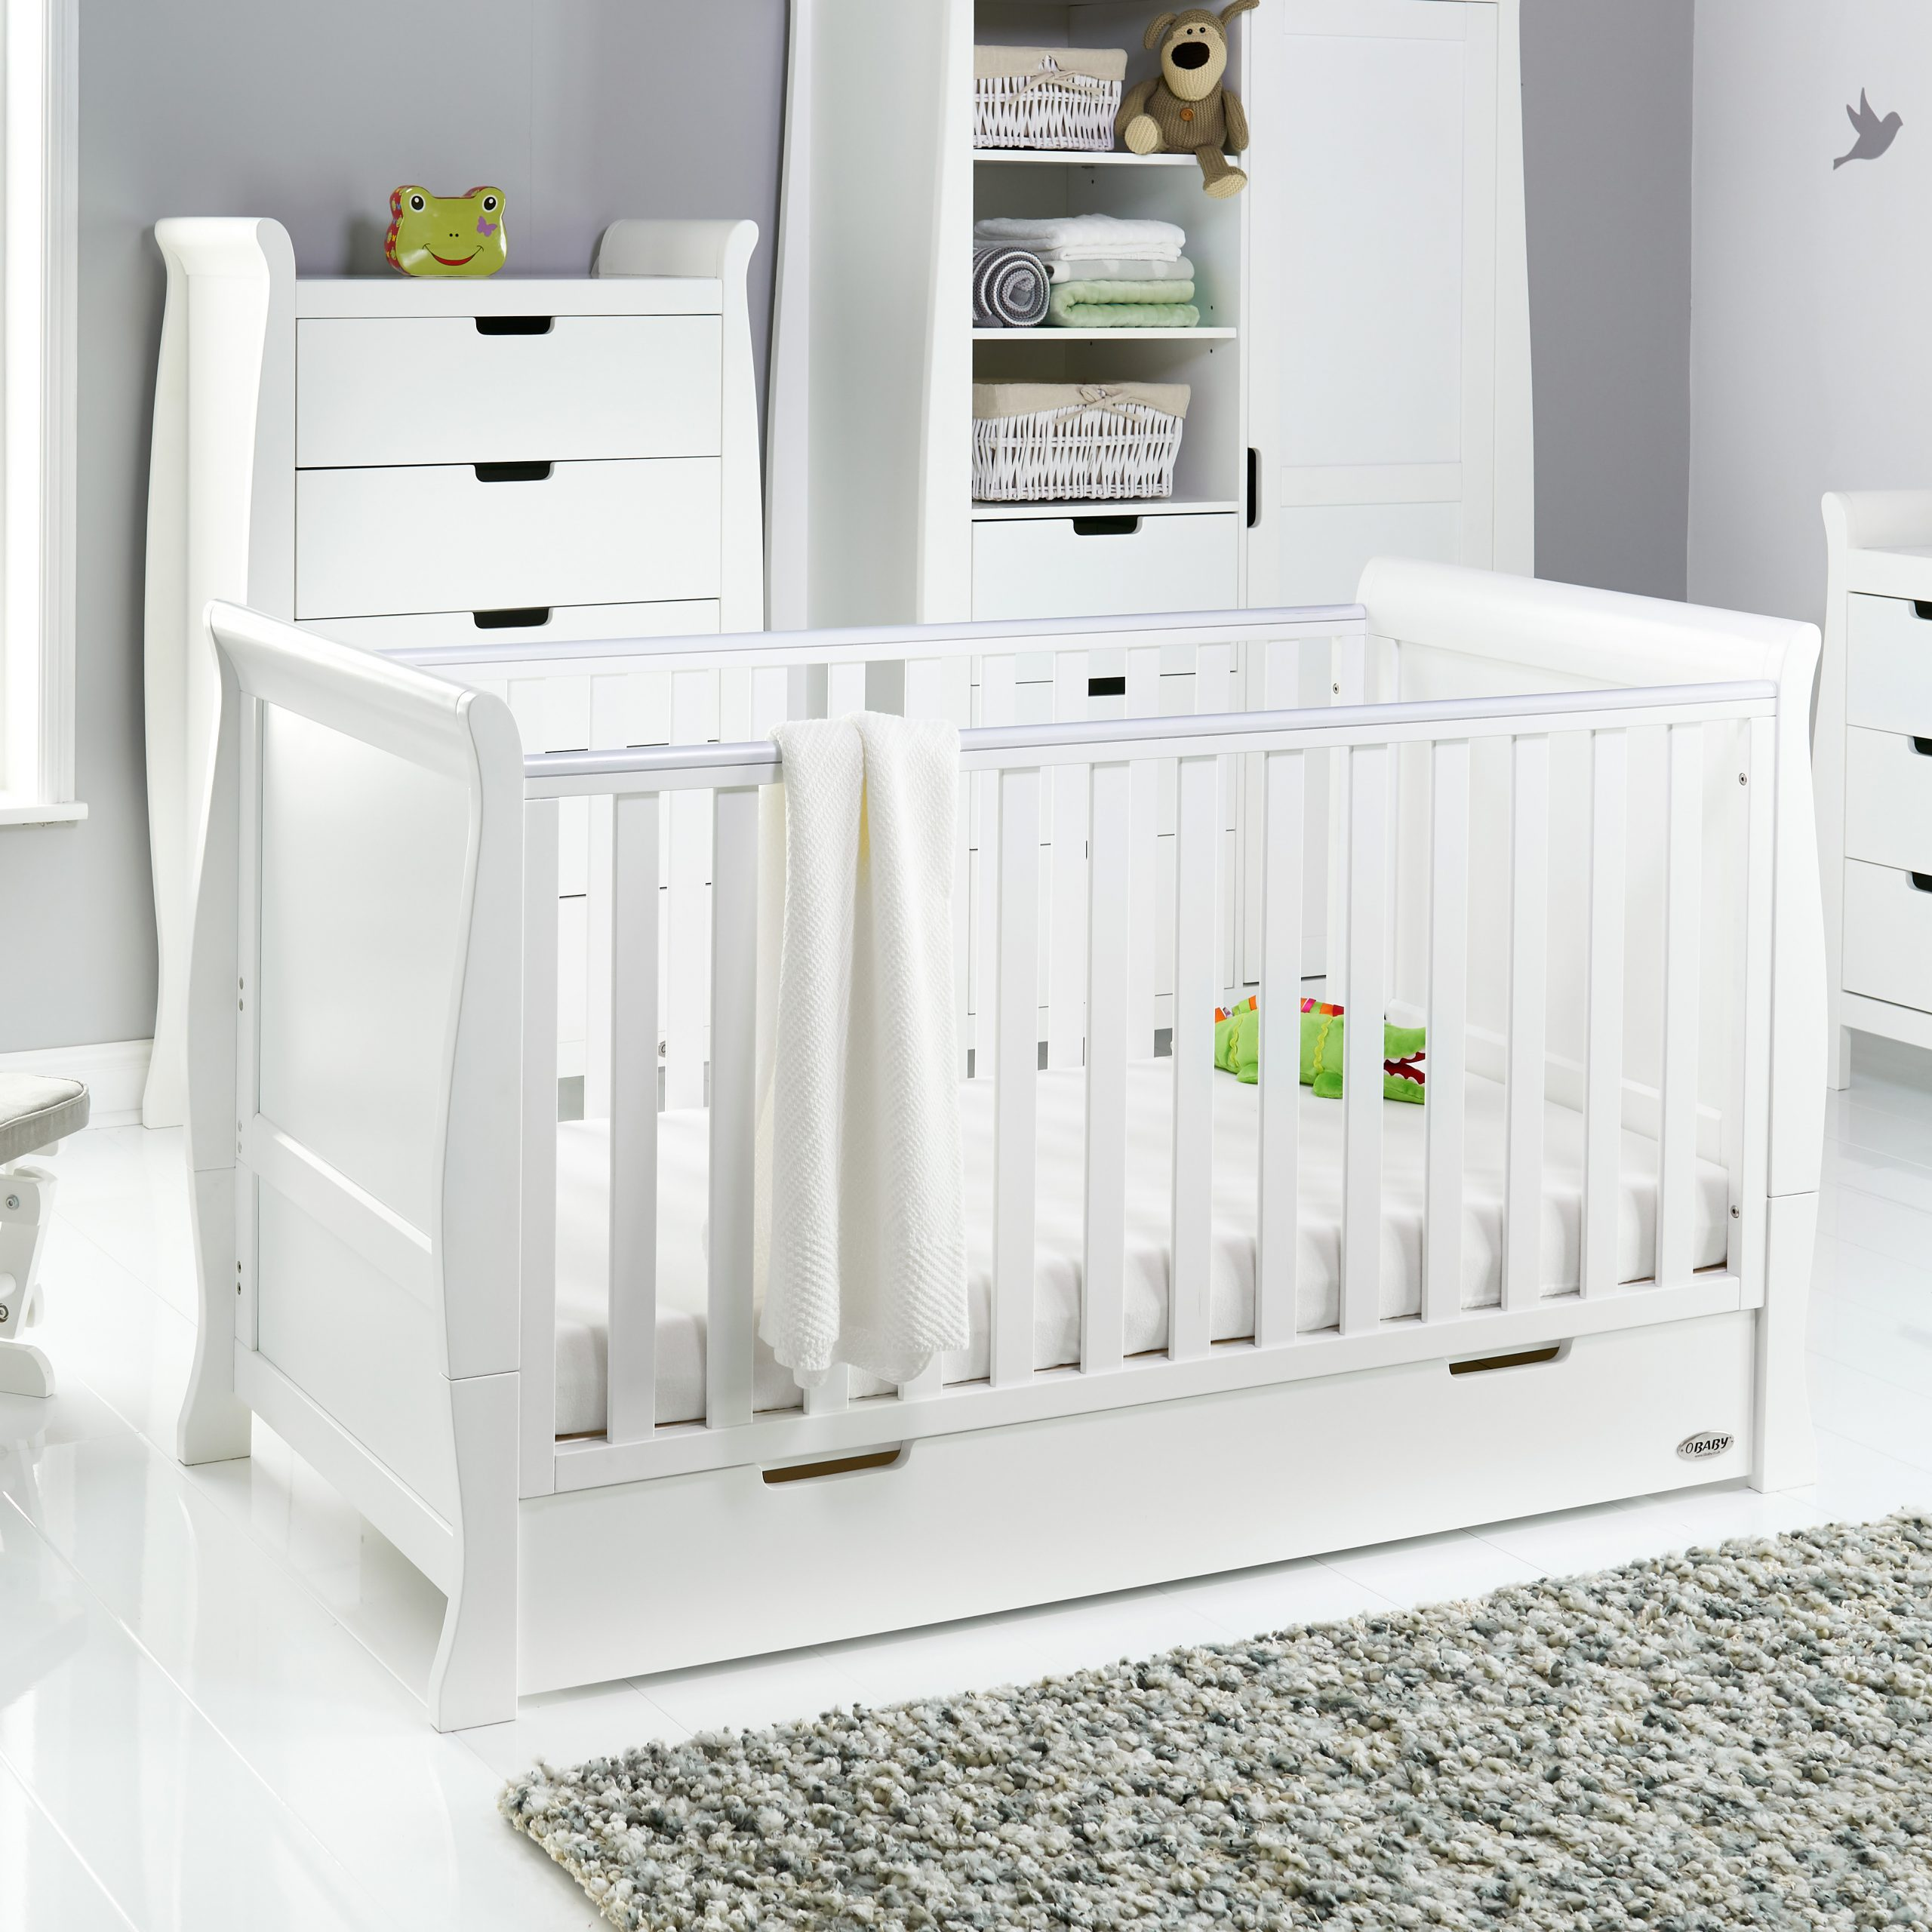 - Stamford Classic Sleigh Cot Bed - White - Obaby